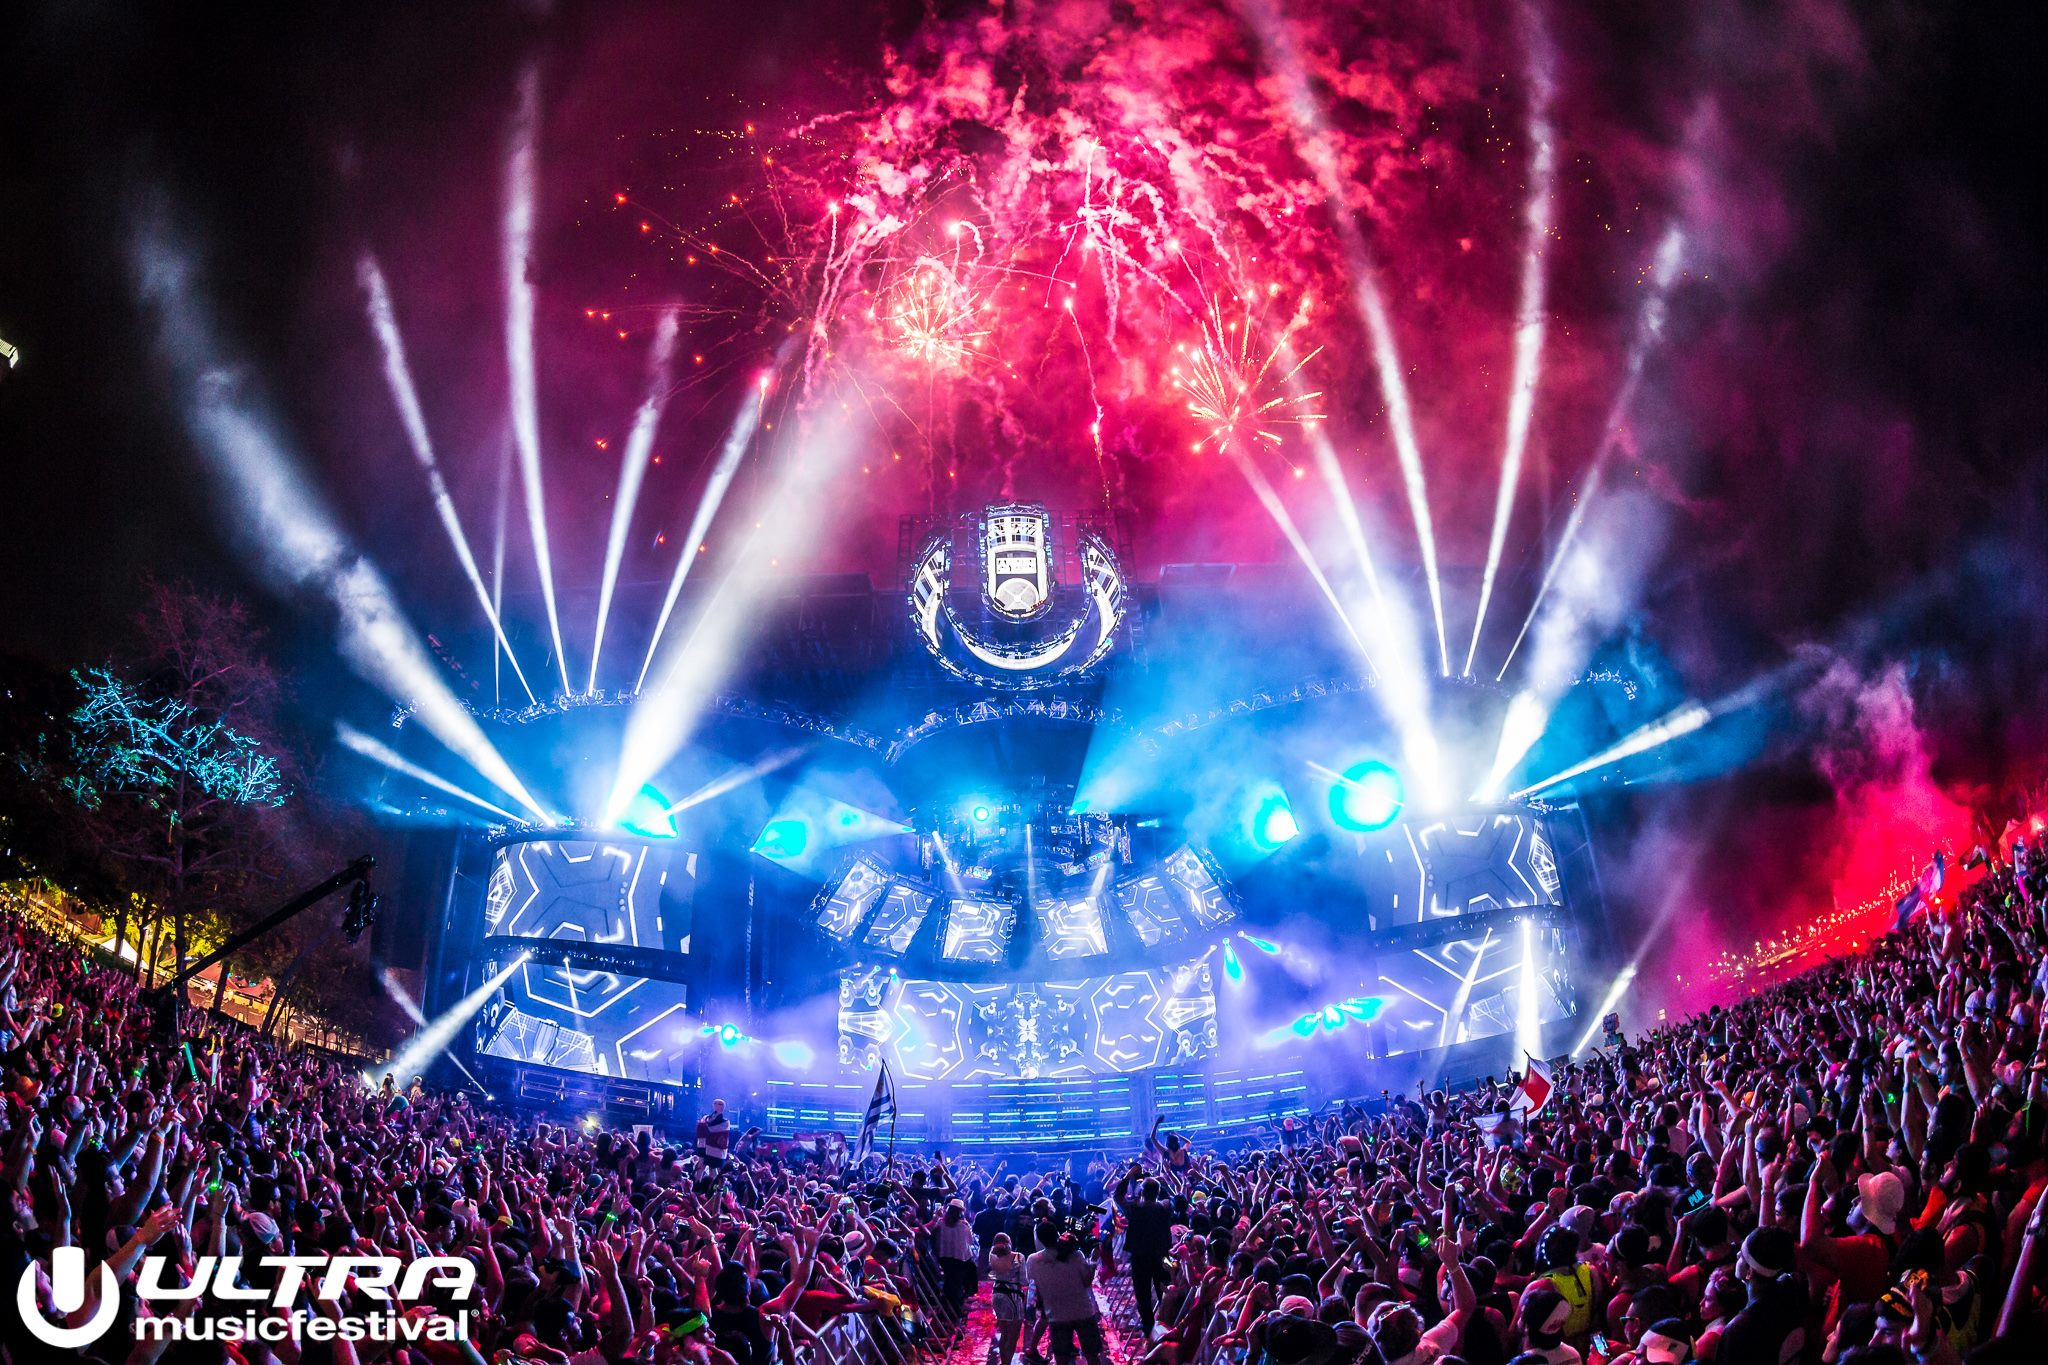 2048x1365 > Ultra Music Festival Wallpapers